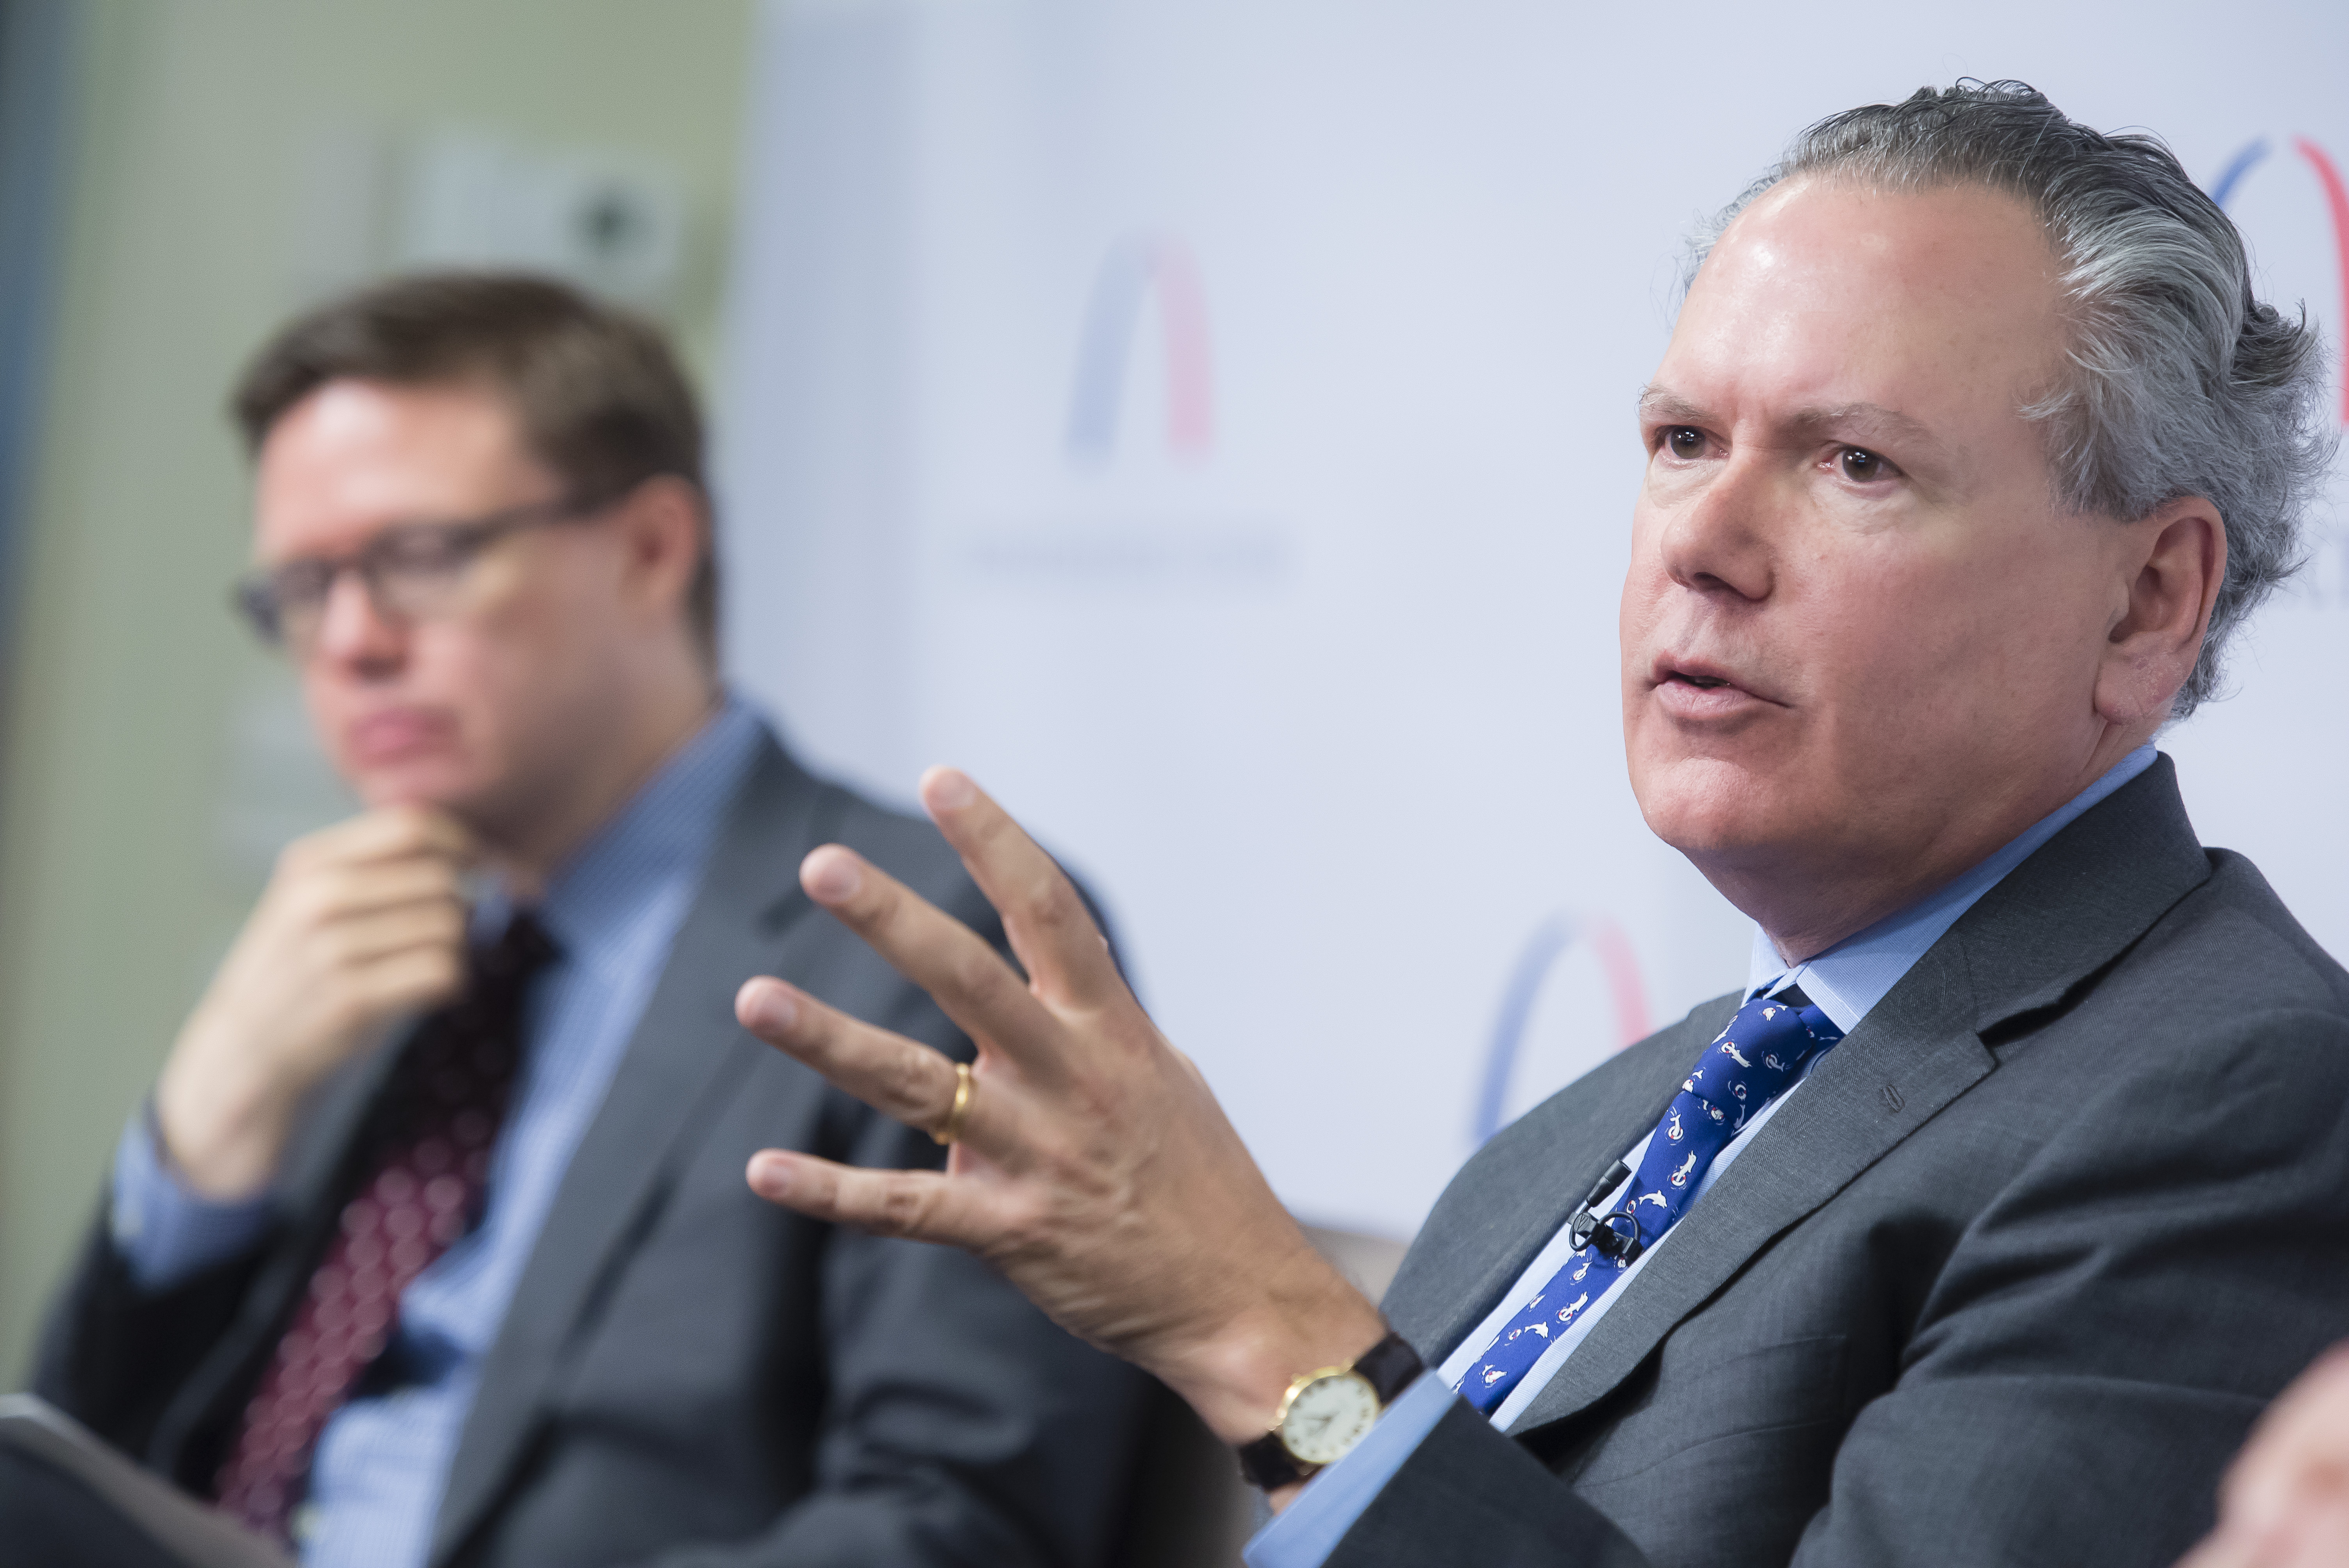 Ken Bentsen at Bipartisan Policy Center's discussion